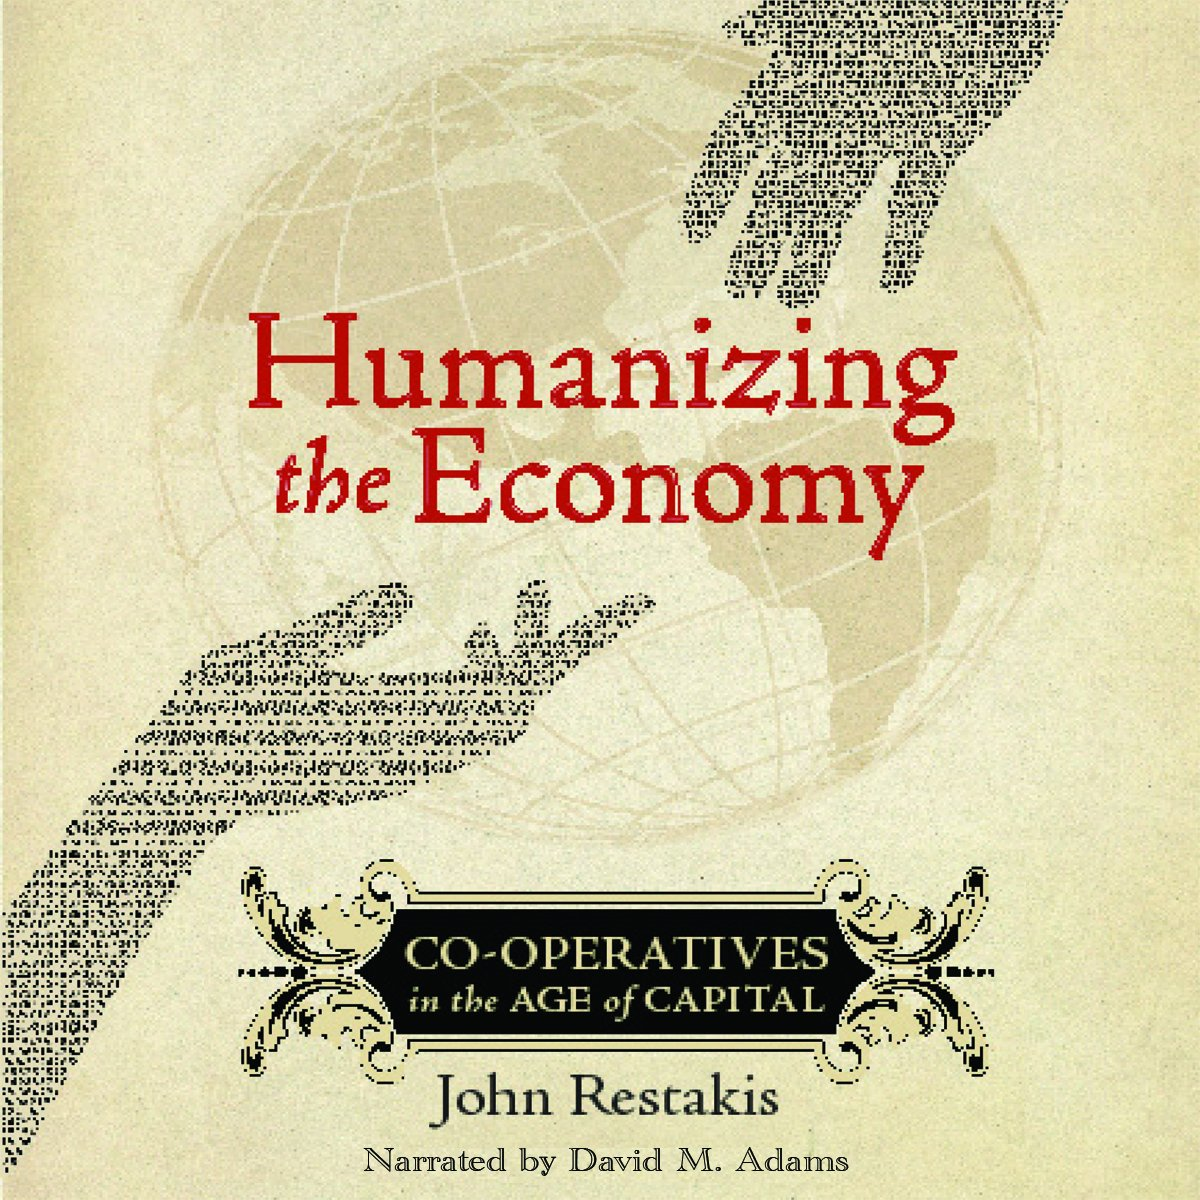 Download Humanizing the Economy: Co-operatives in the Age of Capital MP3 CD ebook